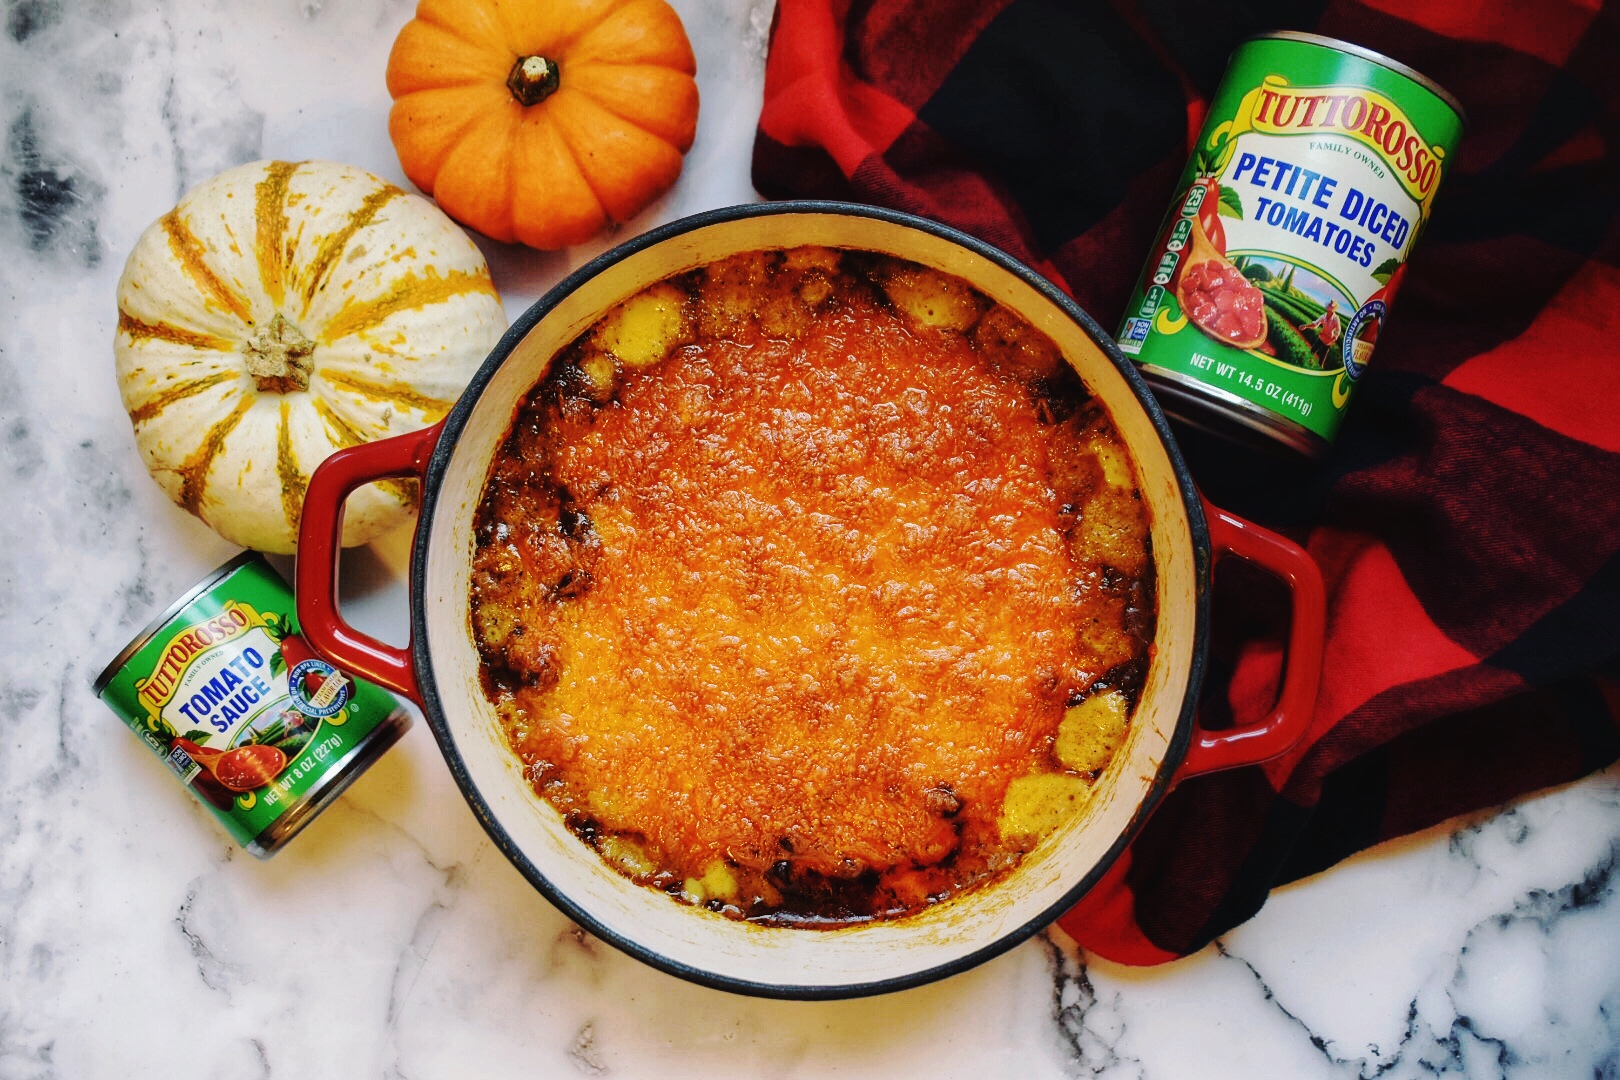 Cheesy Chili Macaroni with a buffalo plaid scarf, marble backgroud, Tuttorosso tomatoes can, and 2 pumpkins.